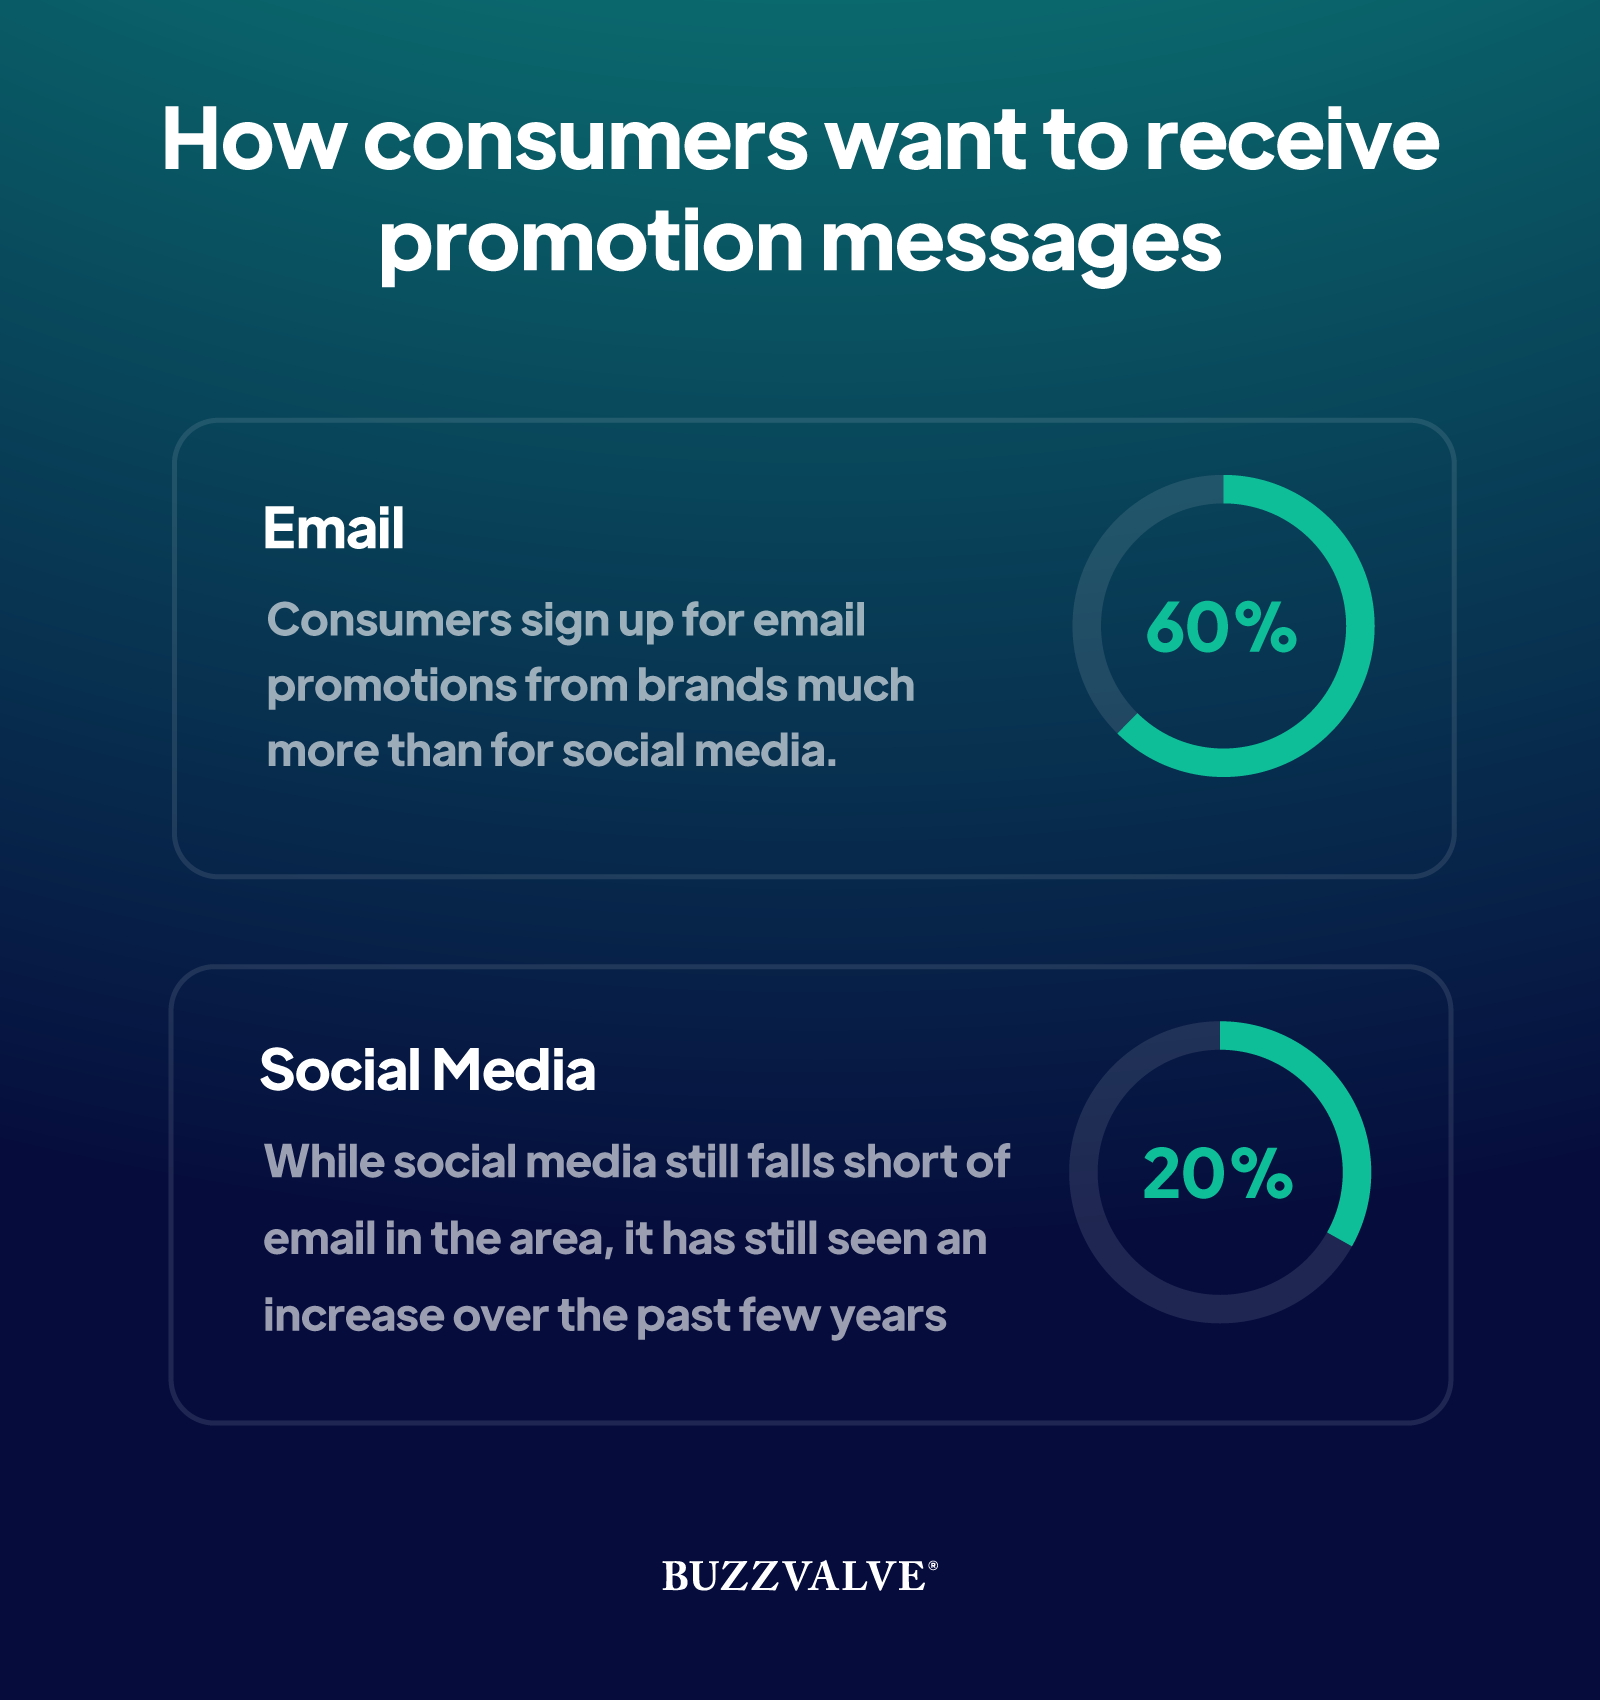 How consumers want to receive promotion messages